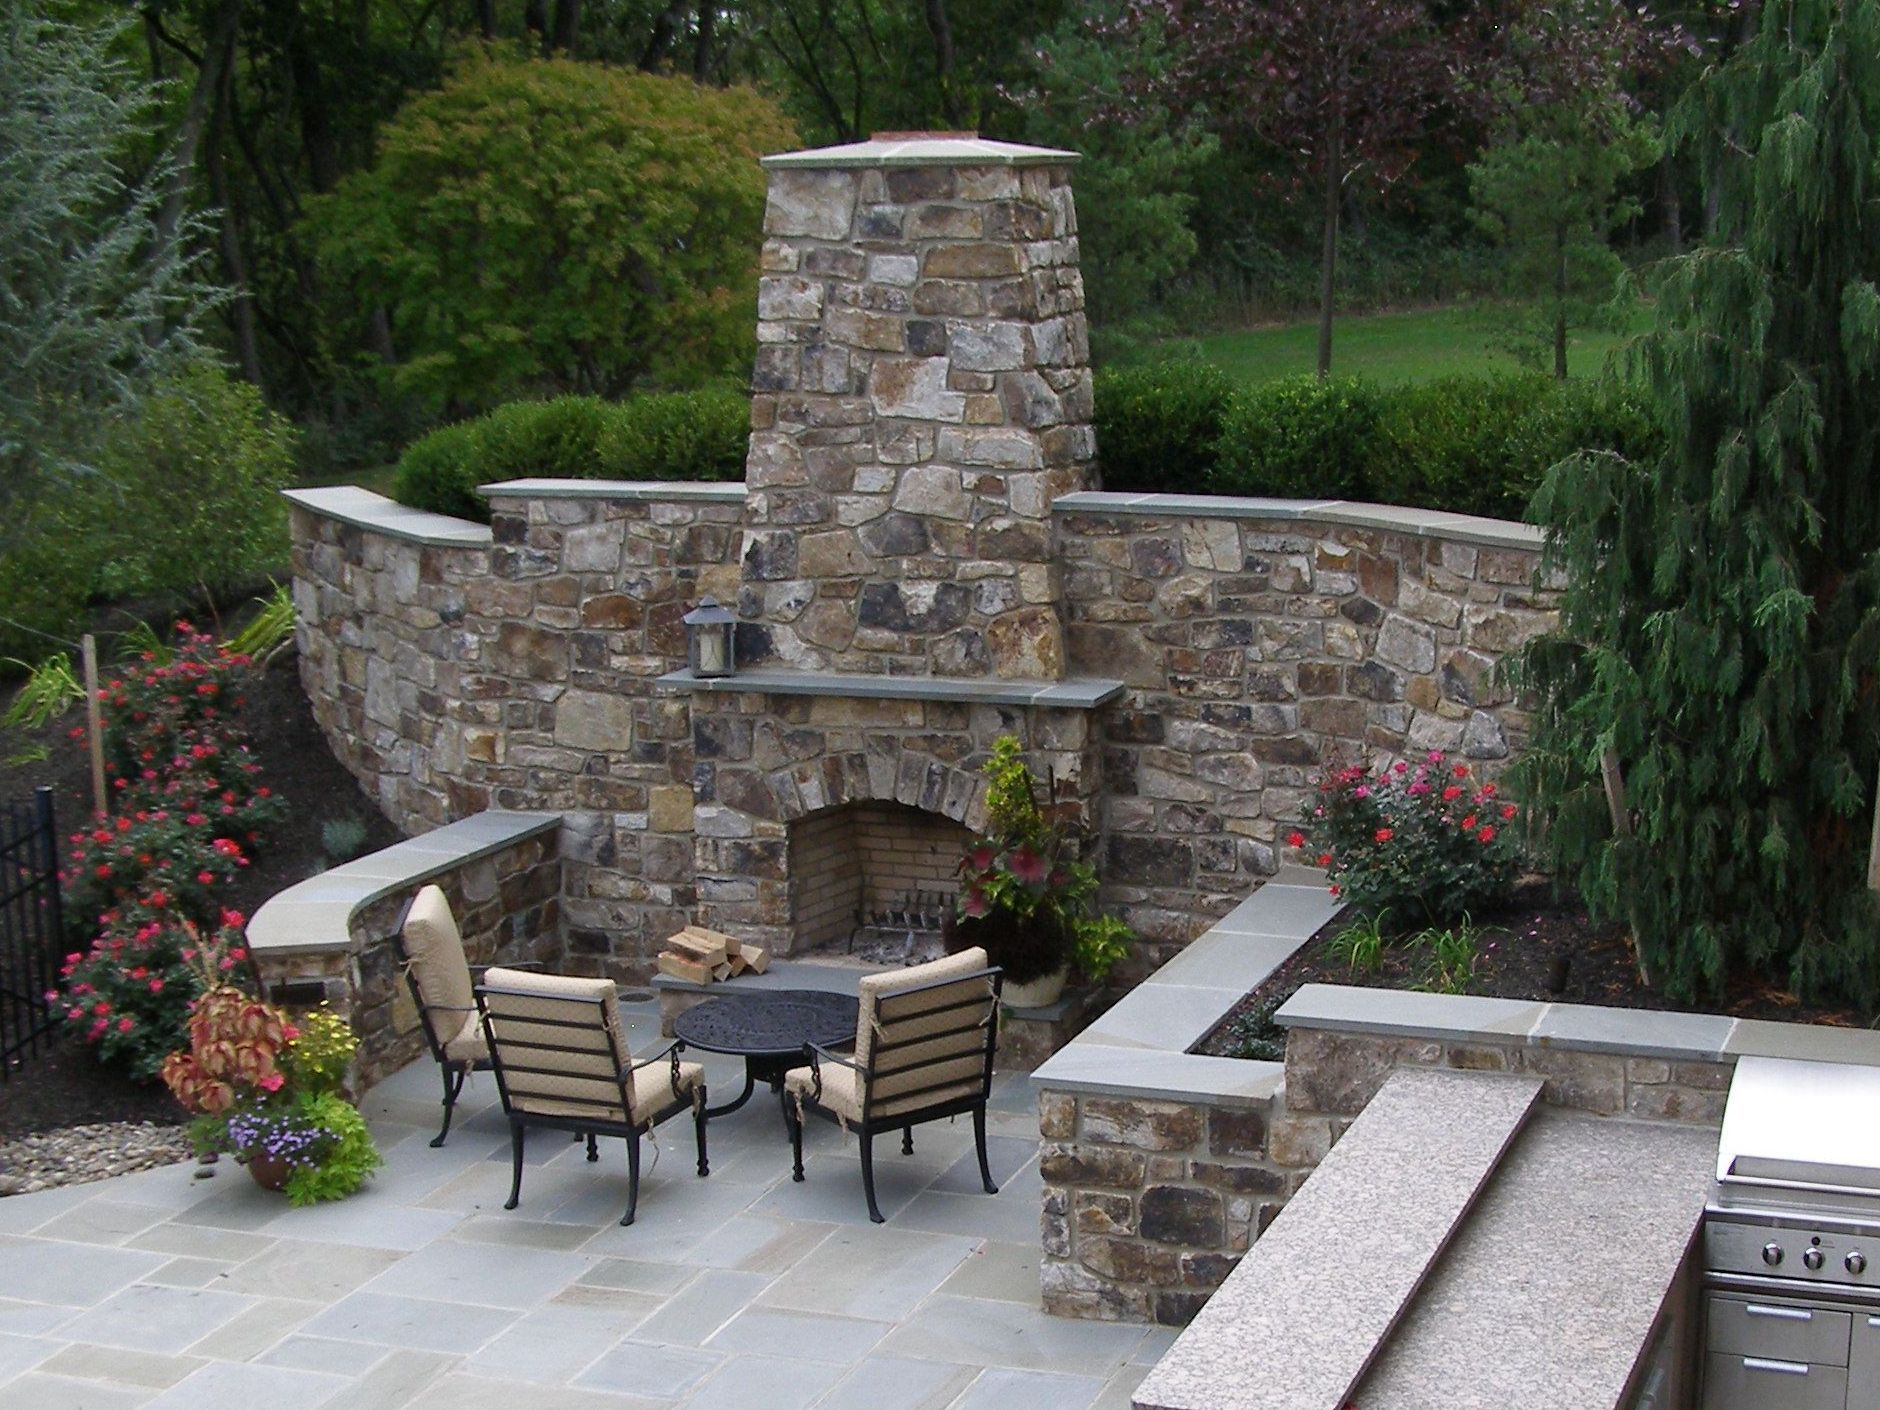 outdoor fireplace incorporated into high stone wall with boxwood